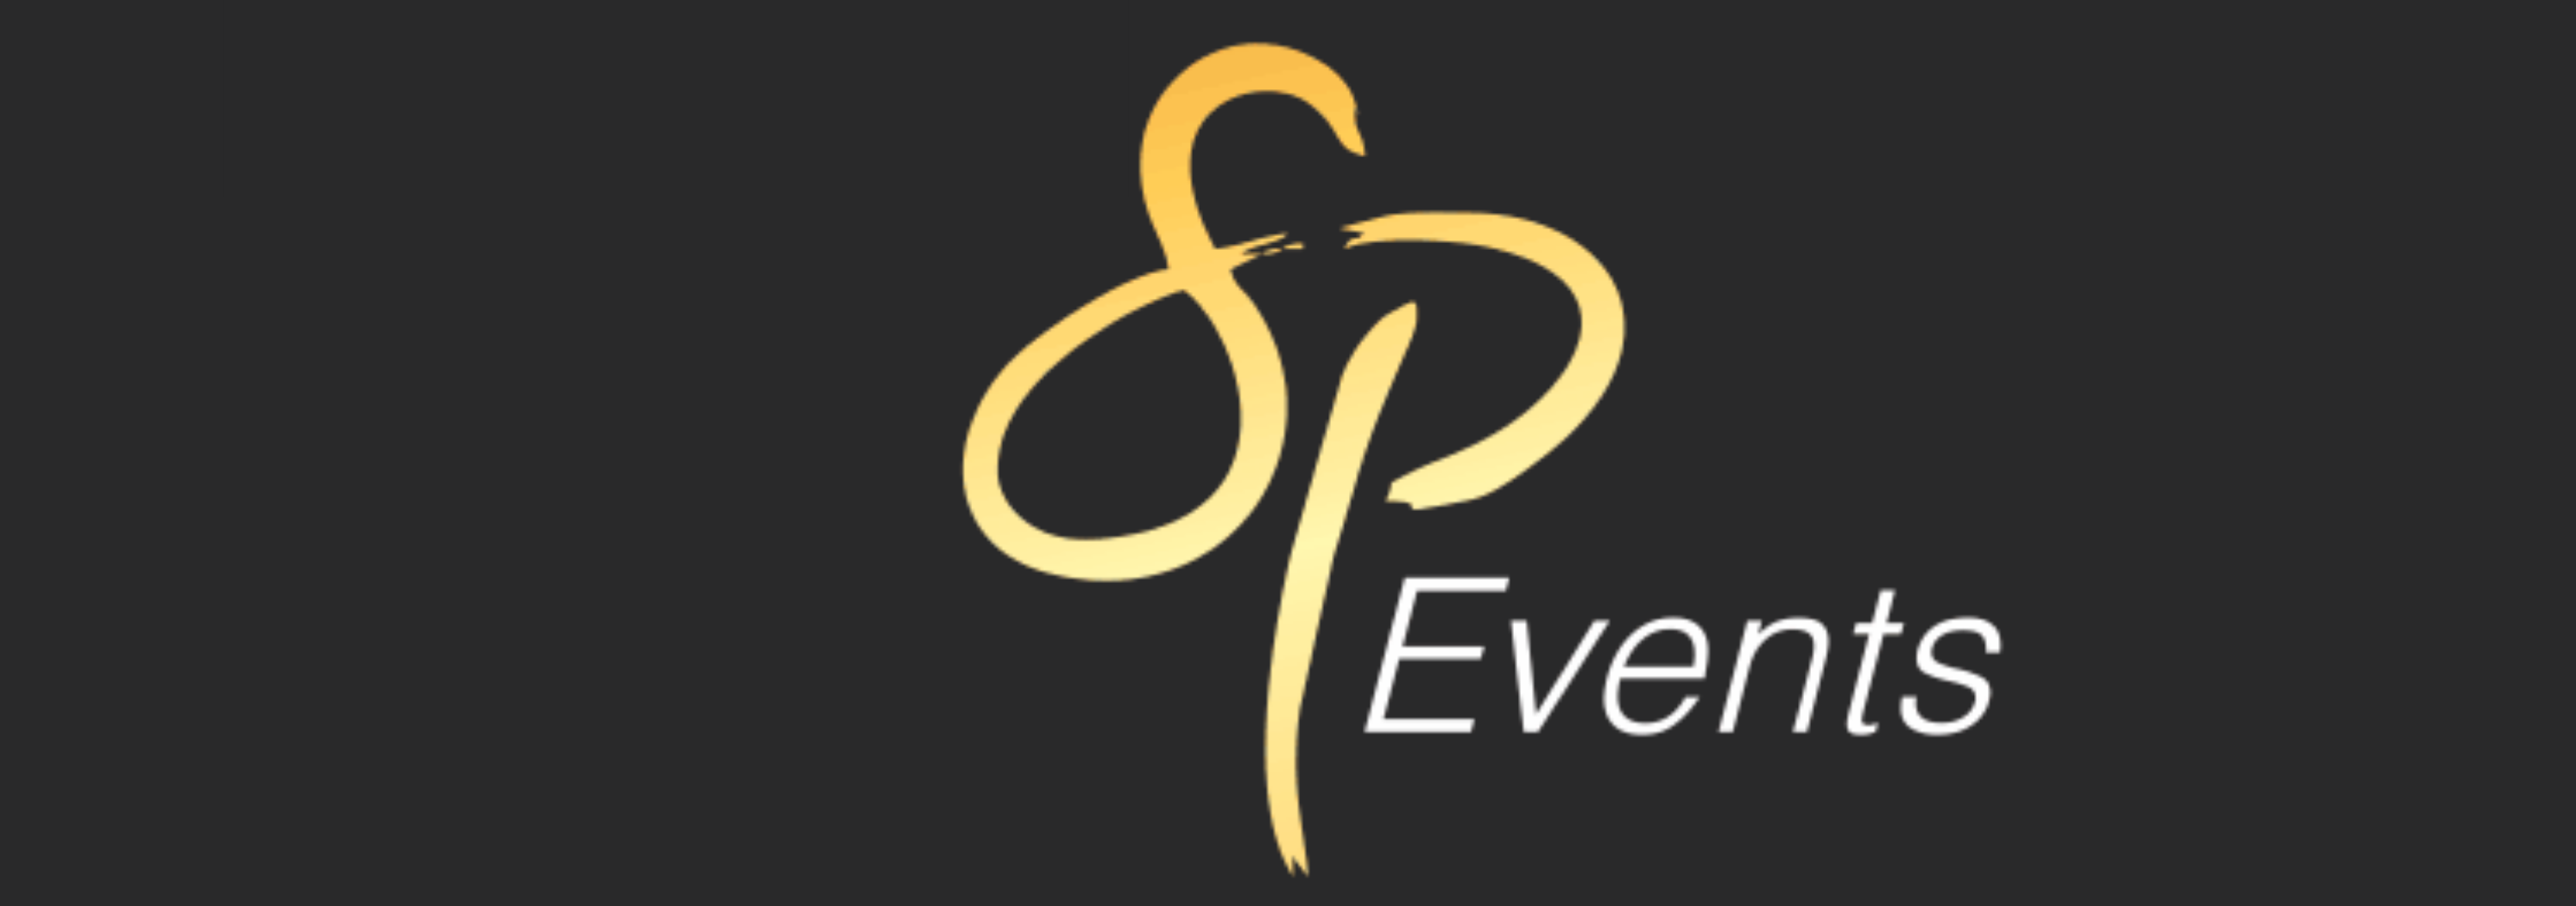 SP Events - Wedding Planner & Event Management Company